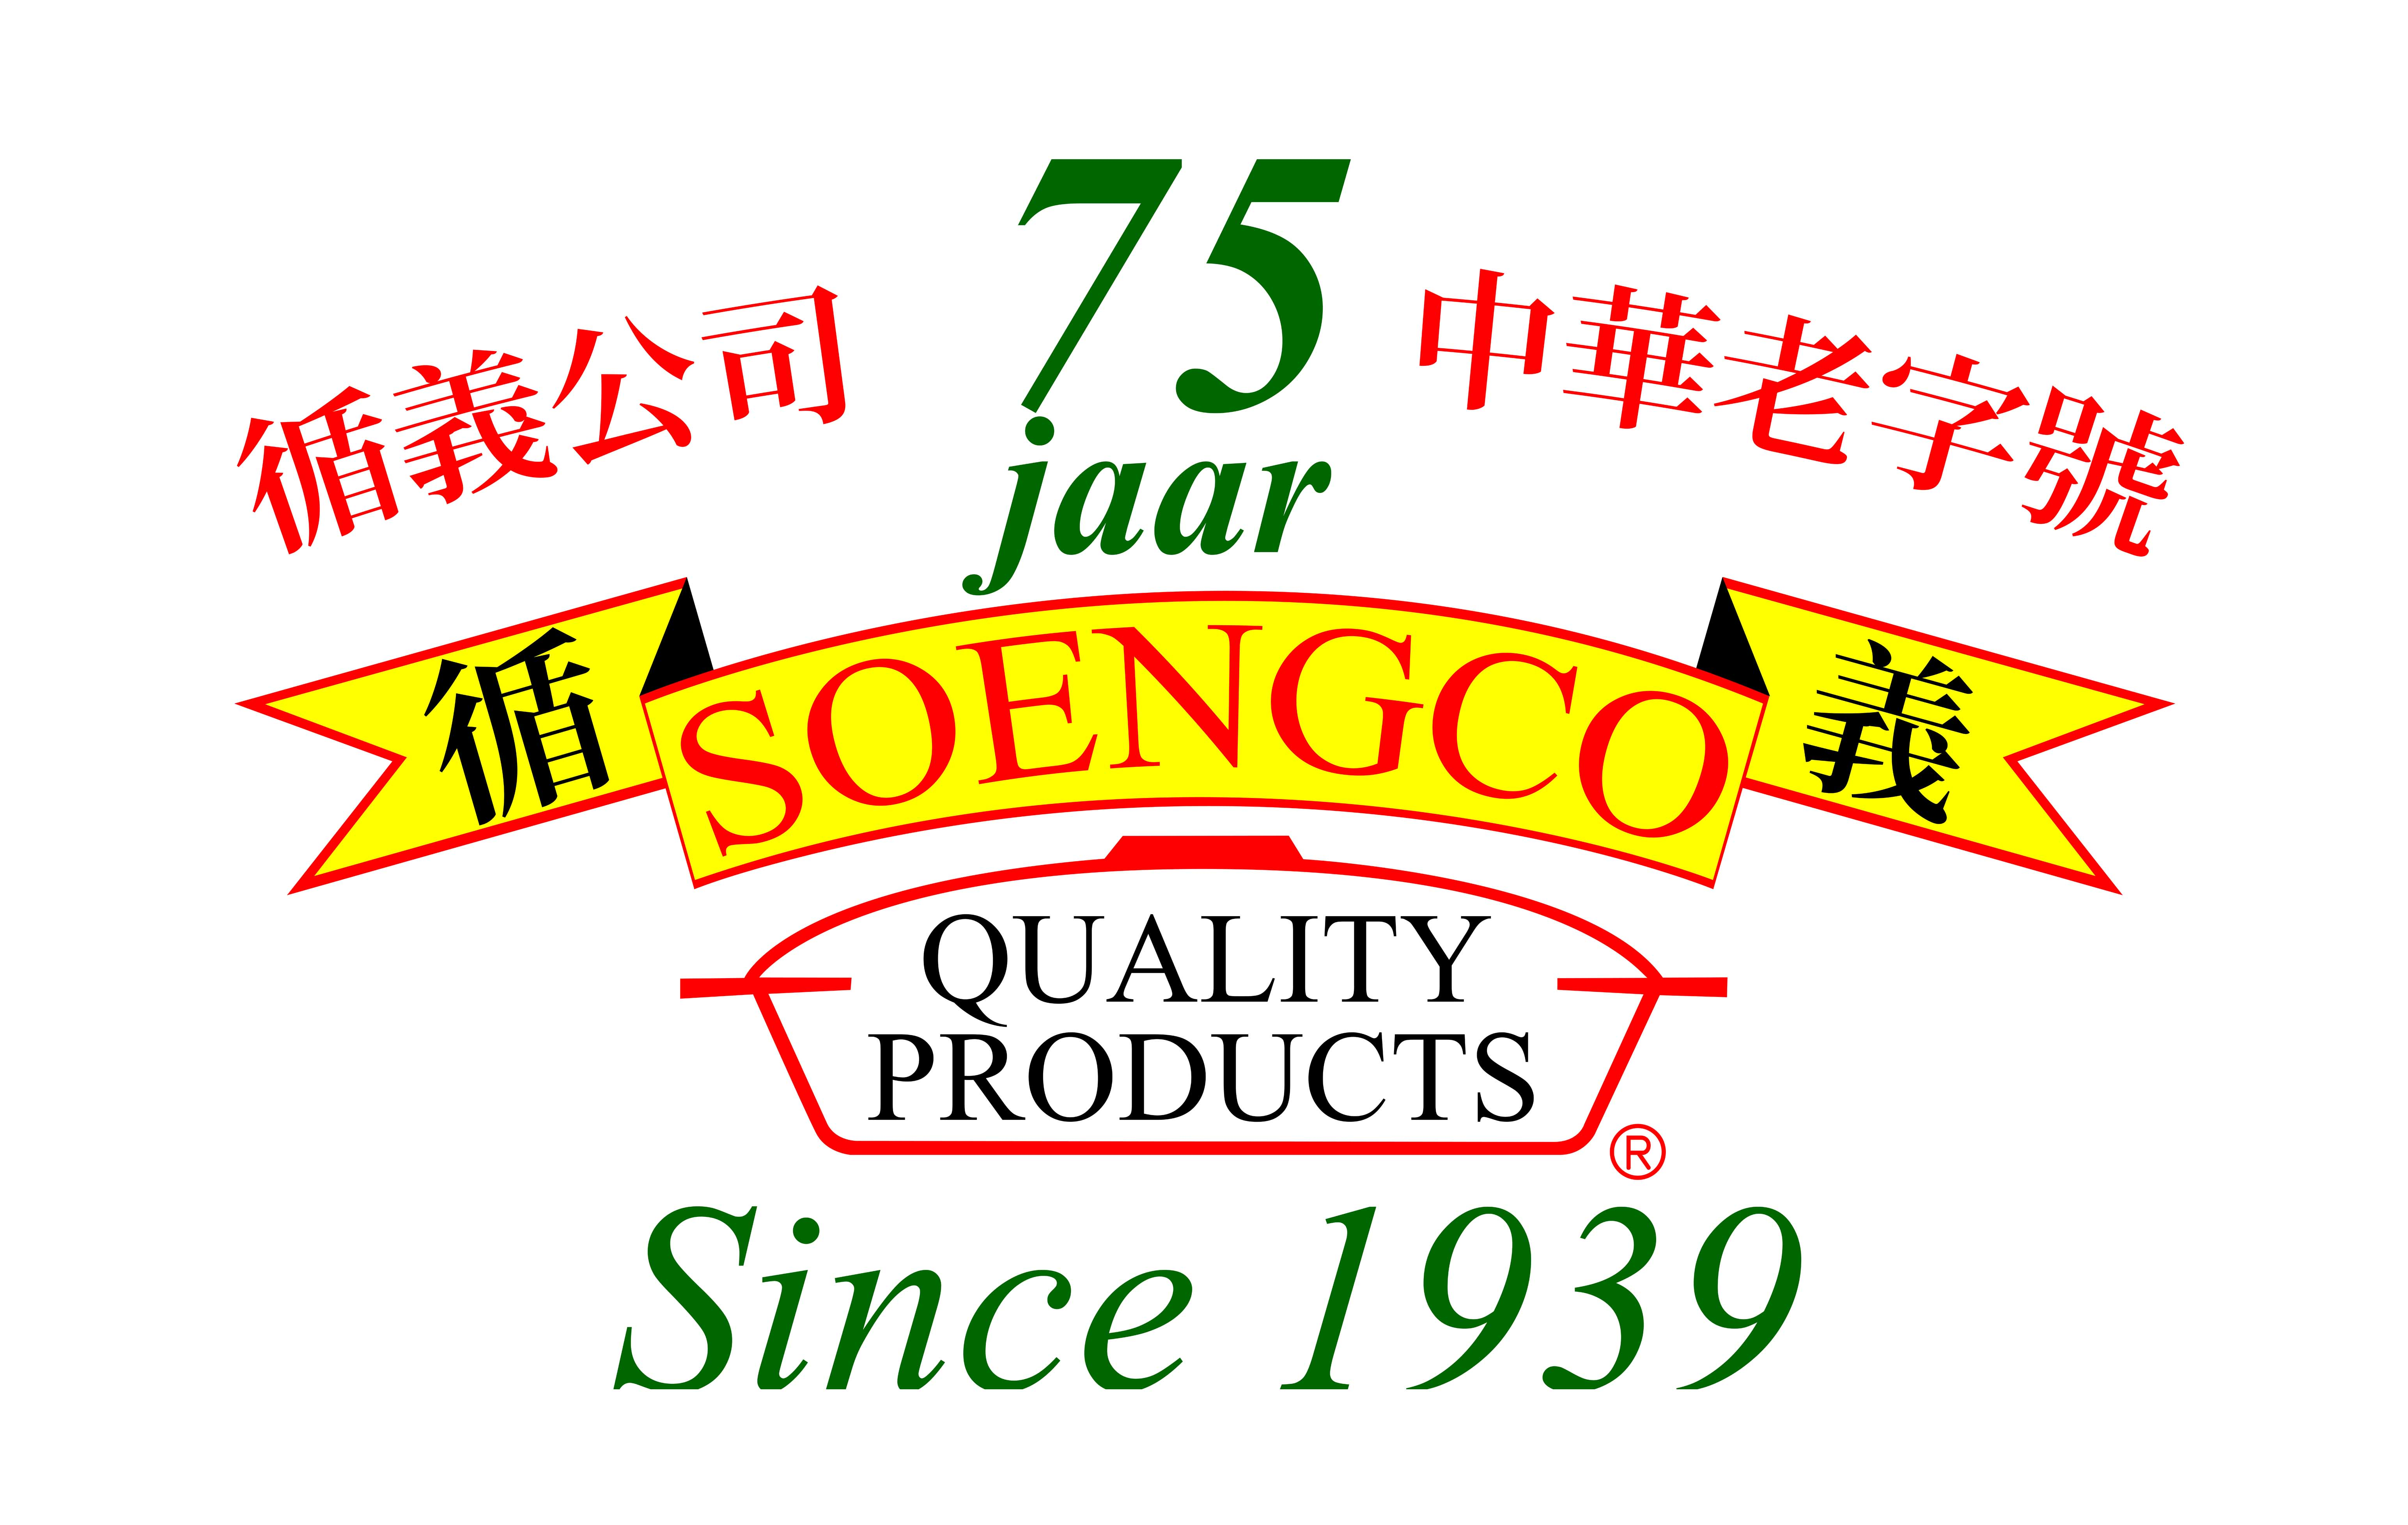 Soengco Fruits